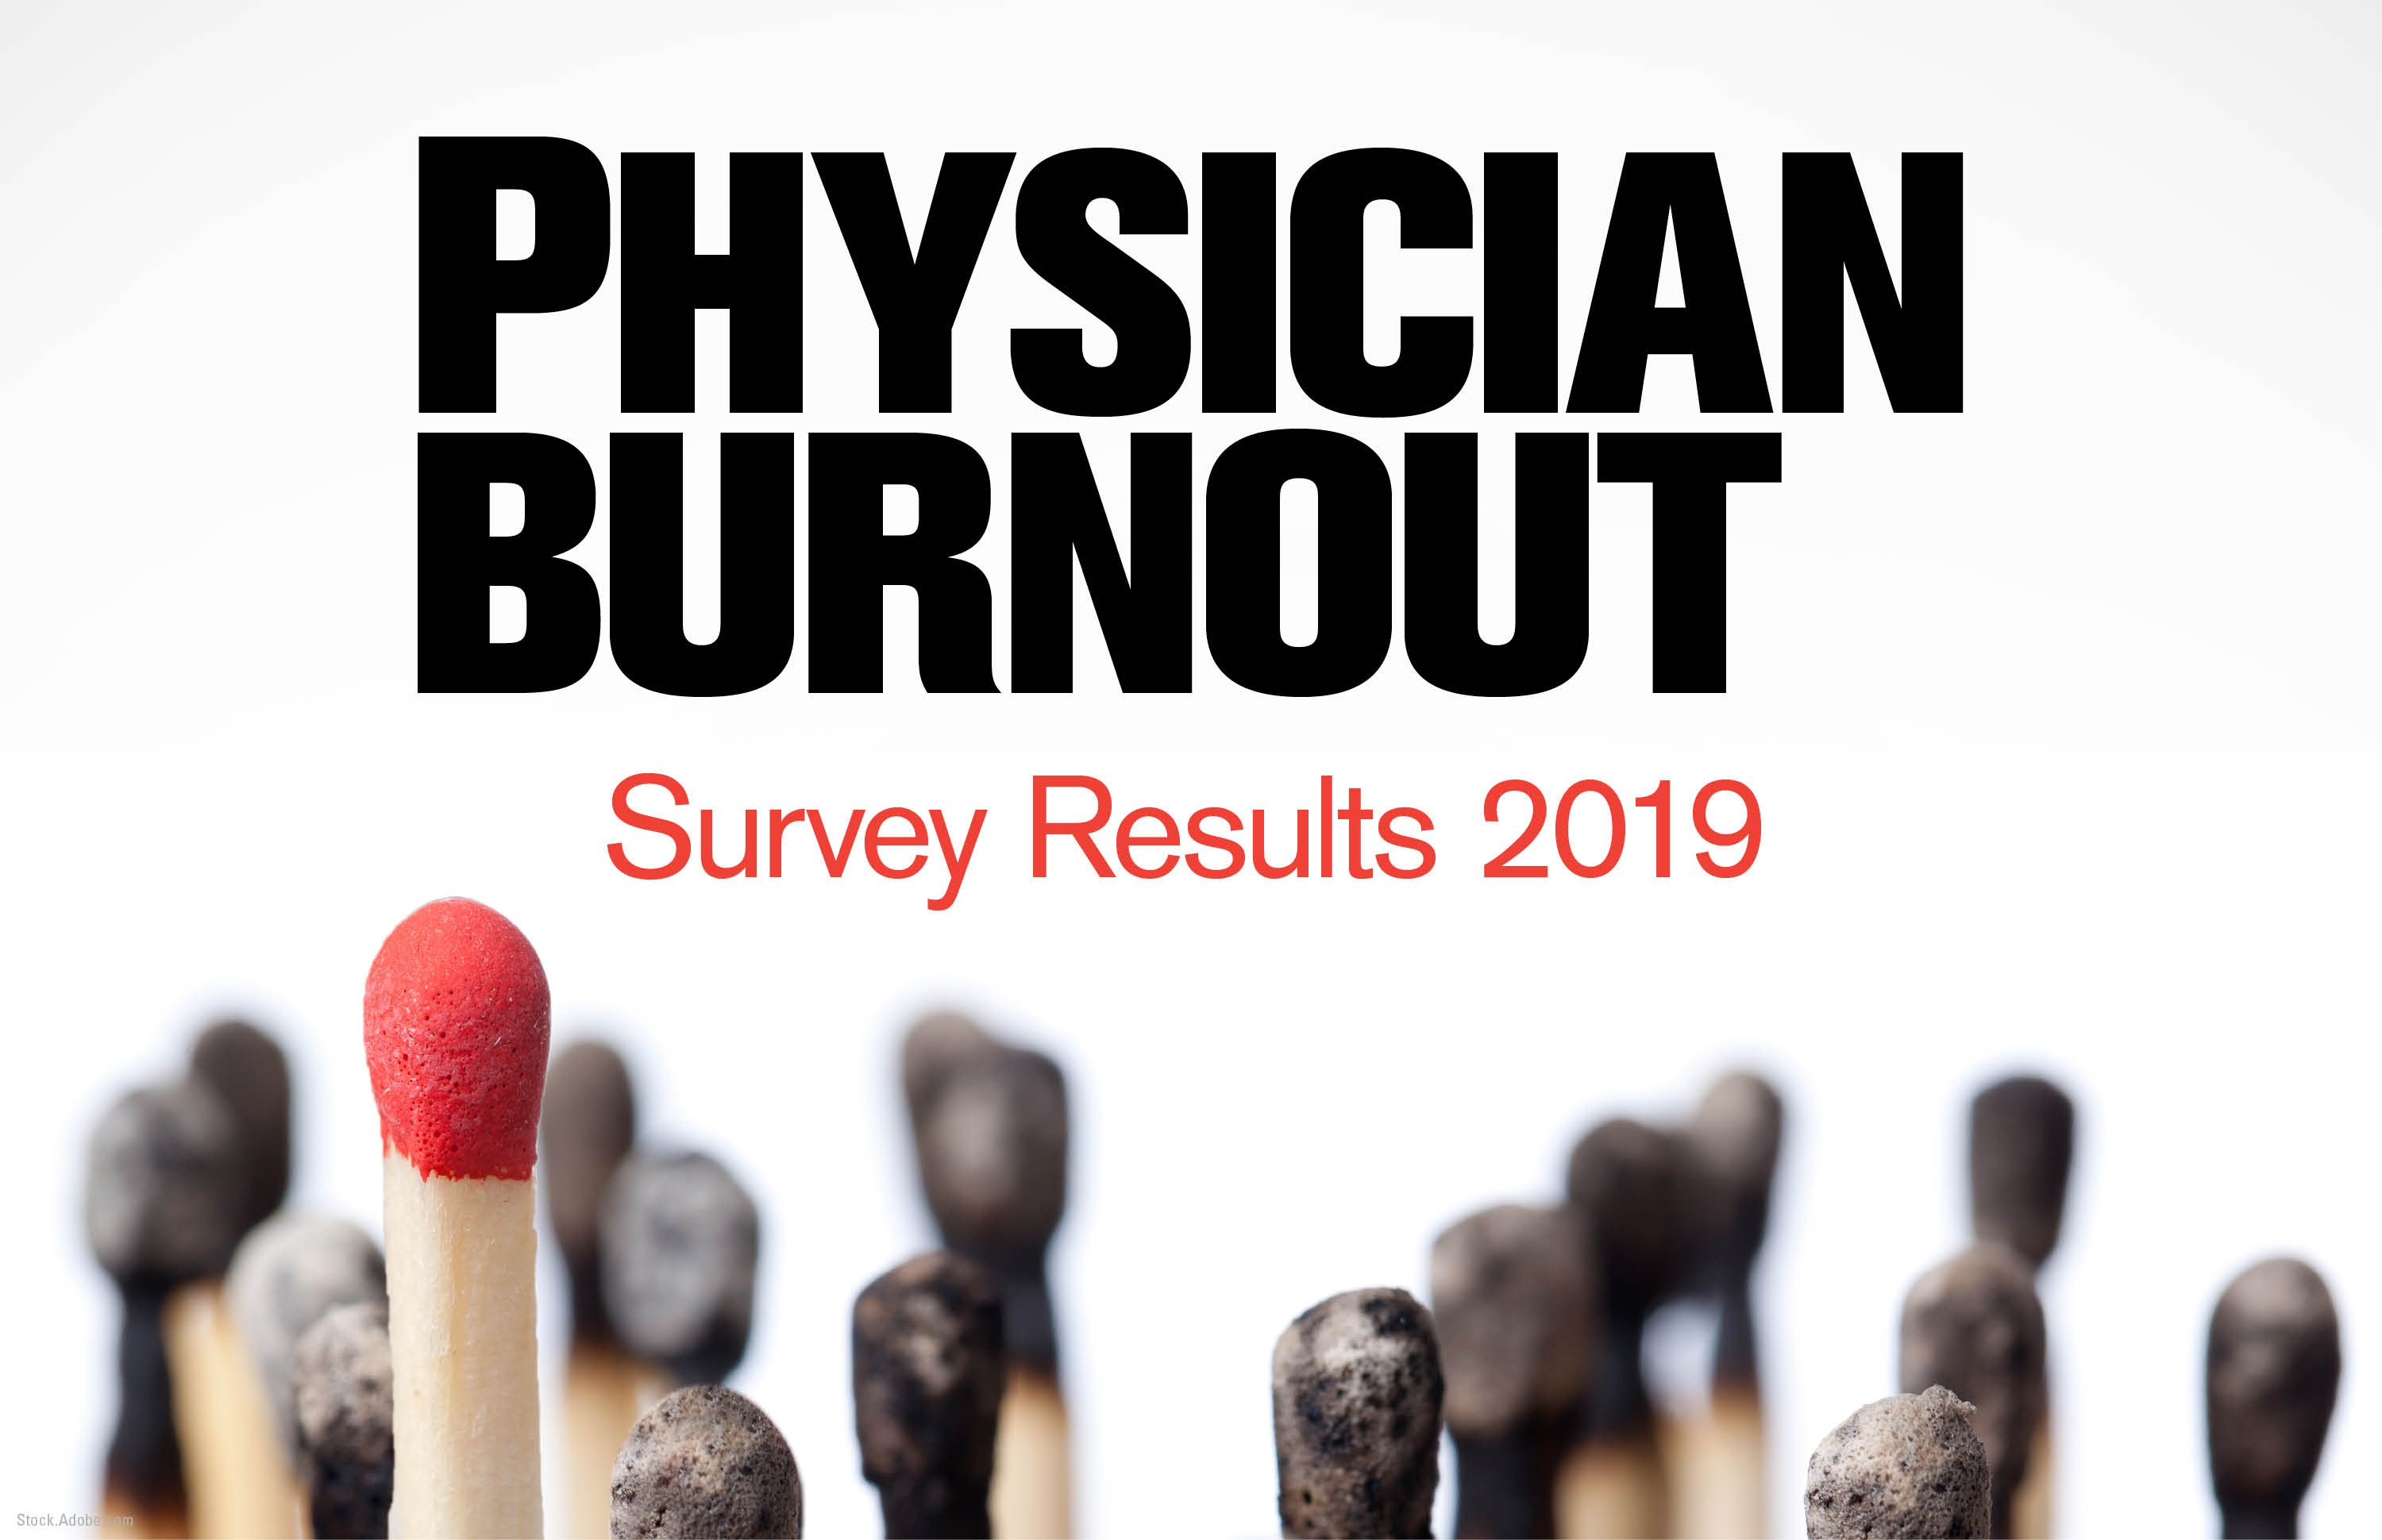 2019 Physician Burnout Survey: Results show growing crisis in medicine